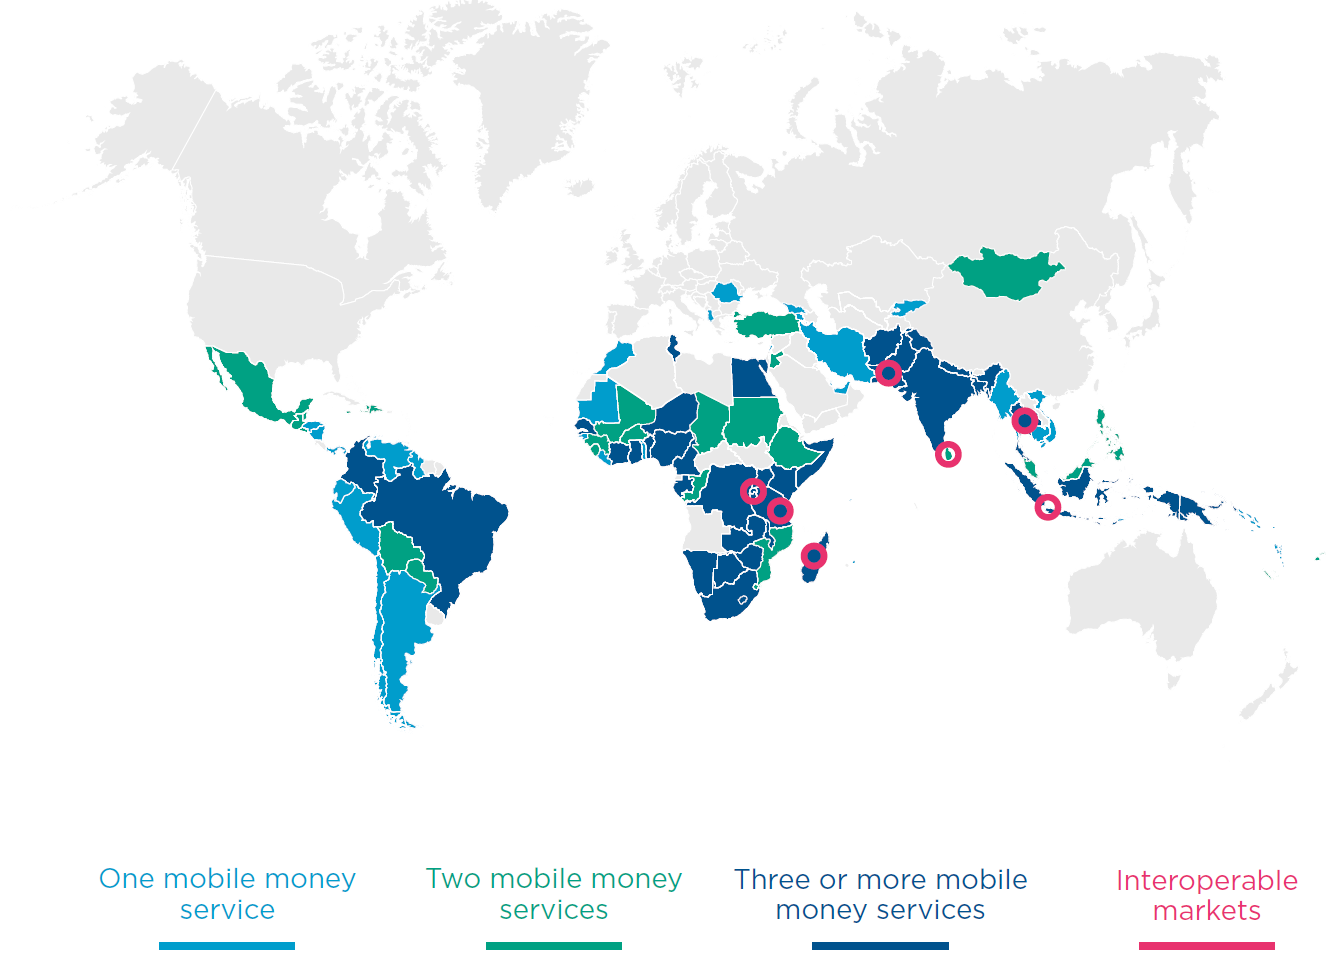 Mobile Money Market Situation in 2015 65% markets have 2 or more live services (60 out of 93 countries).